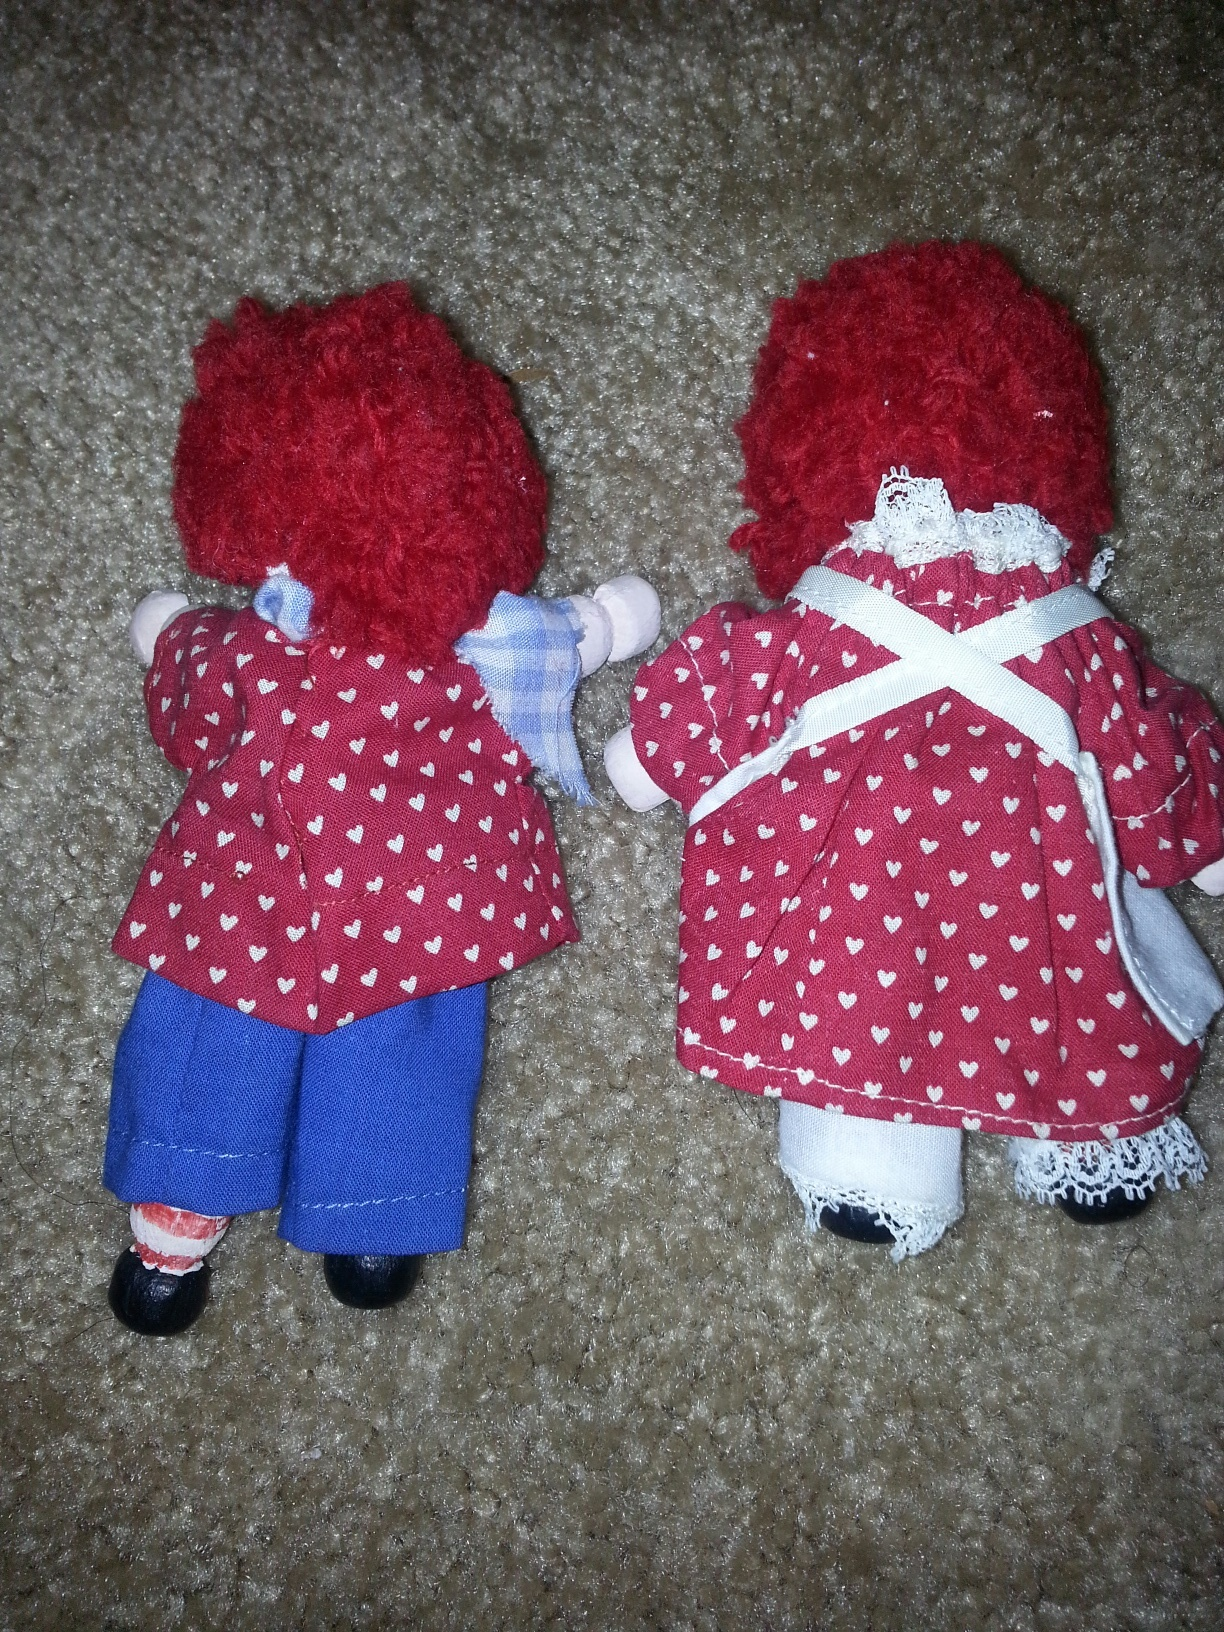 Raggedy Ann and Andy Raggedy Ann and Andy